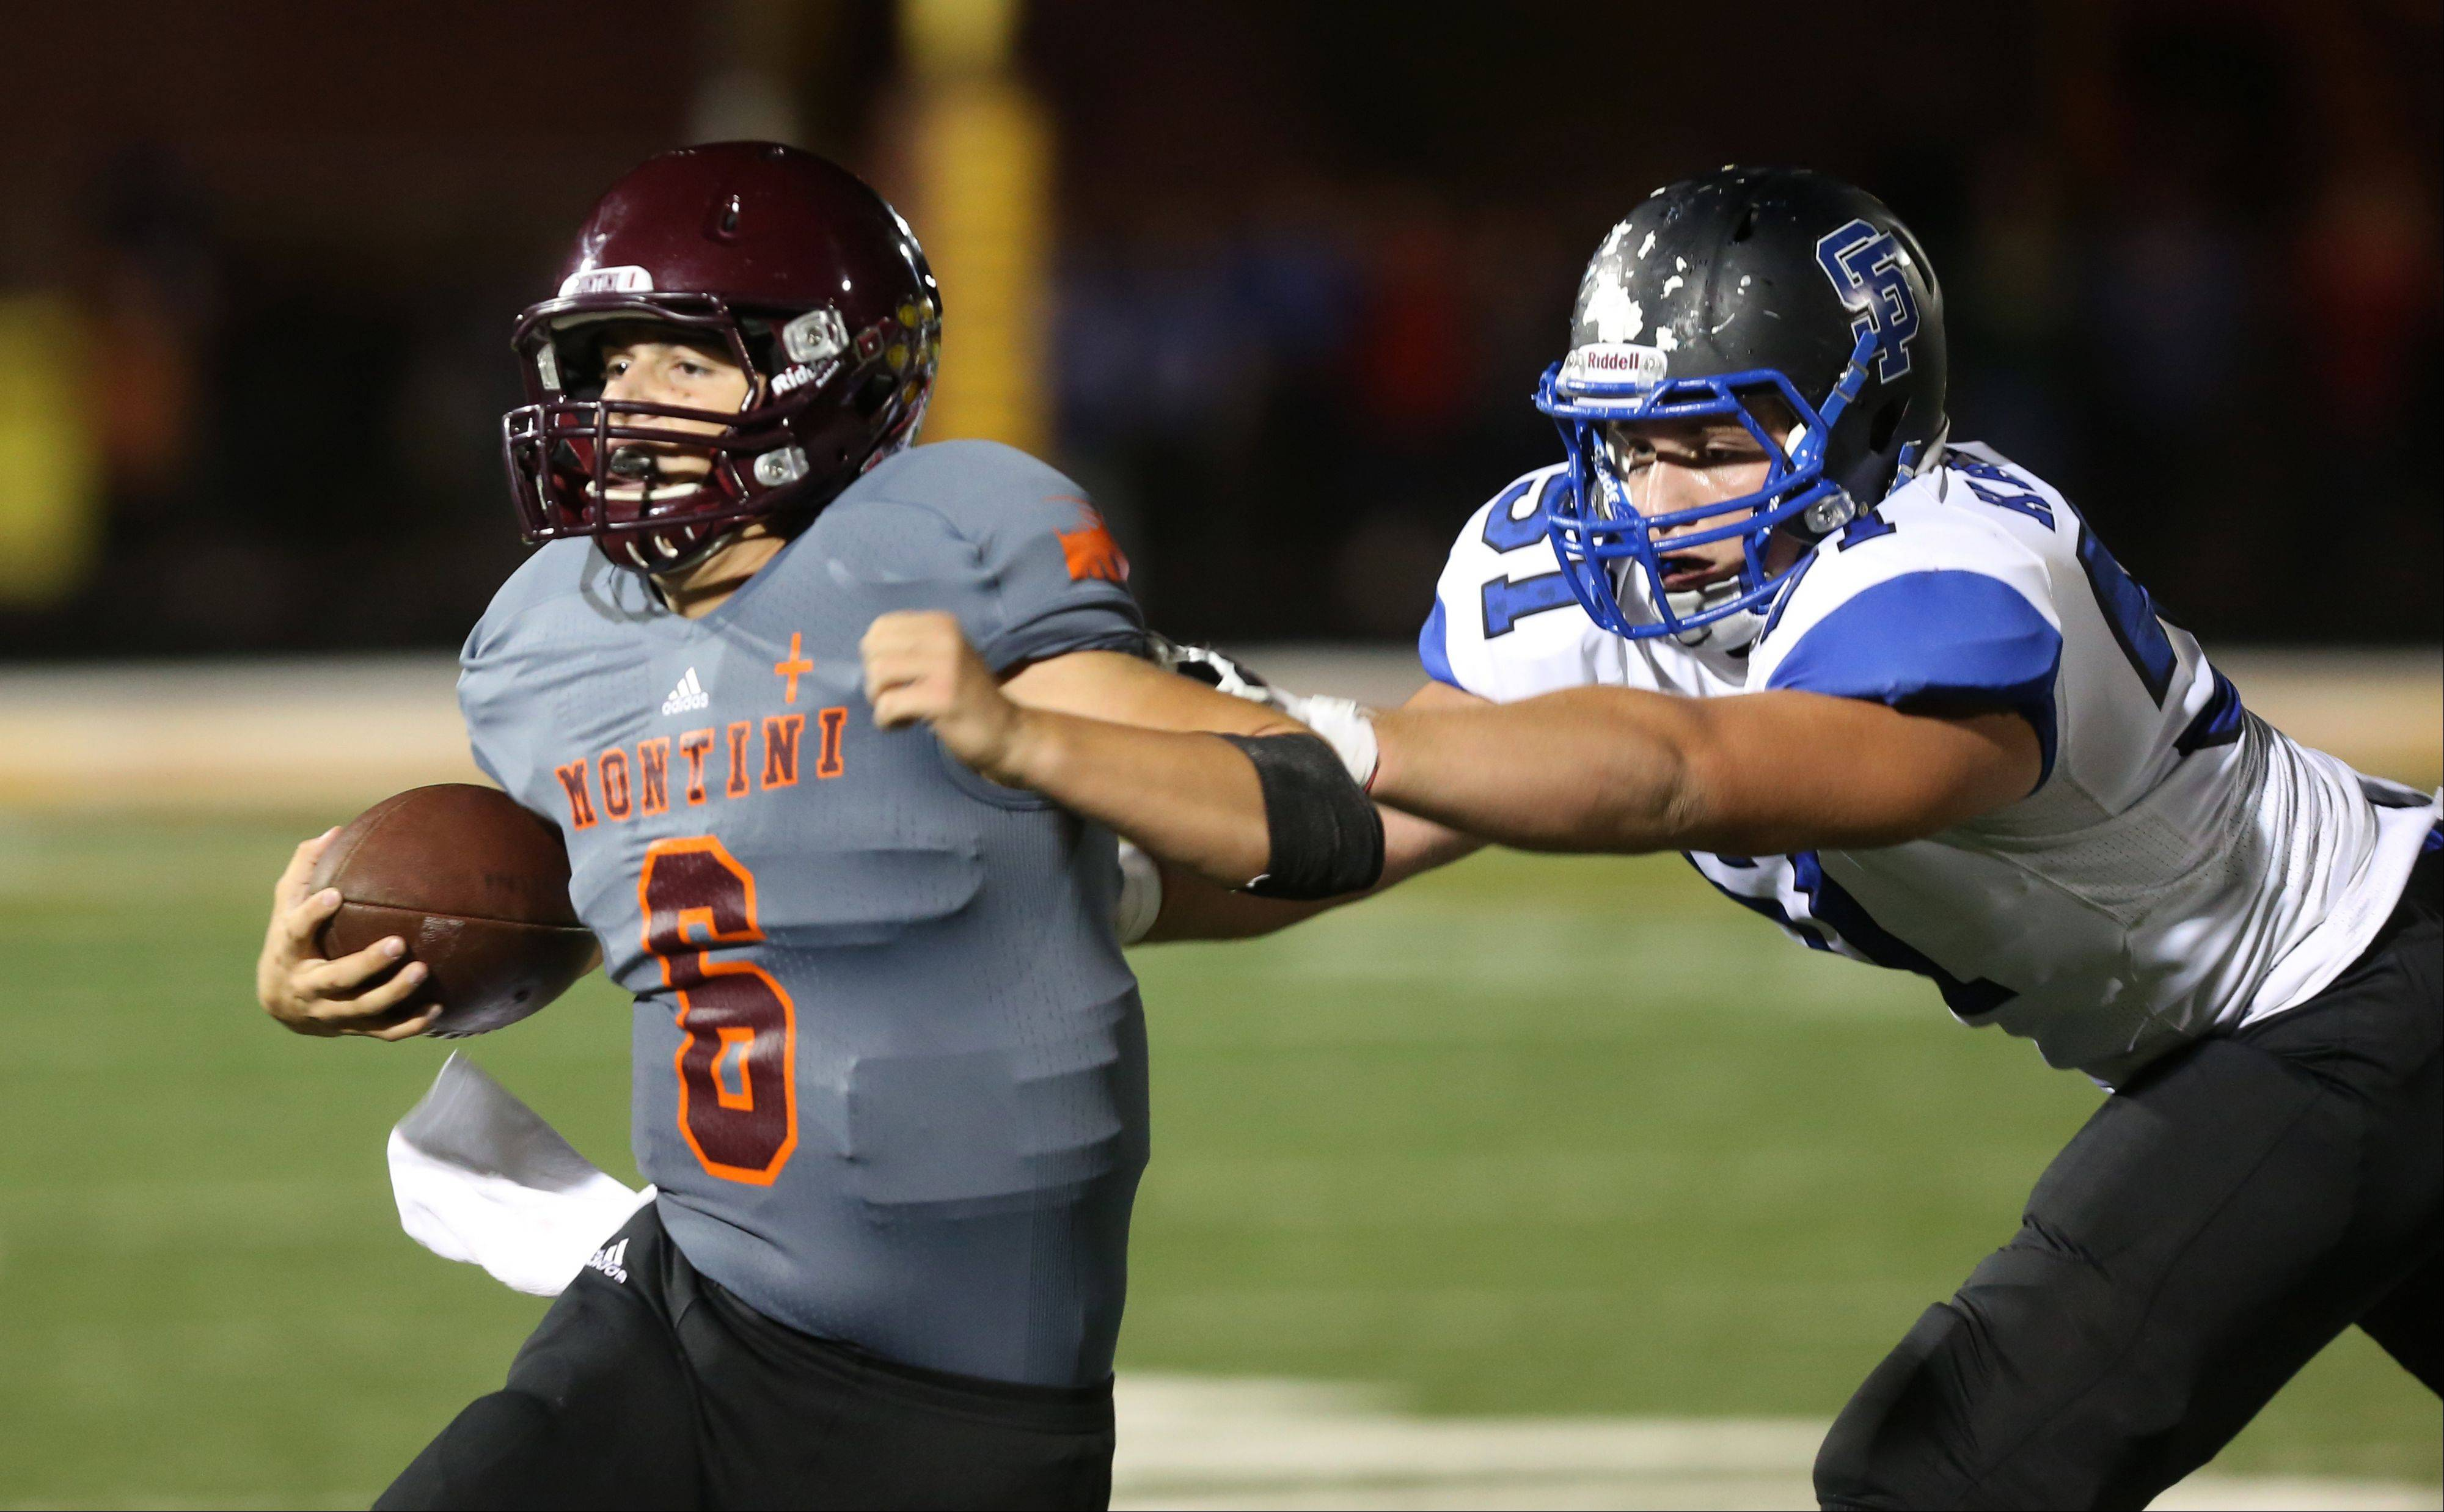 Images: St. Francis High School vs. Montini Catholic High School football